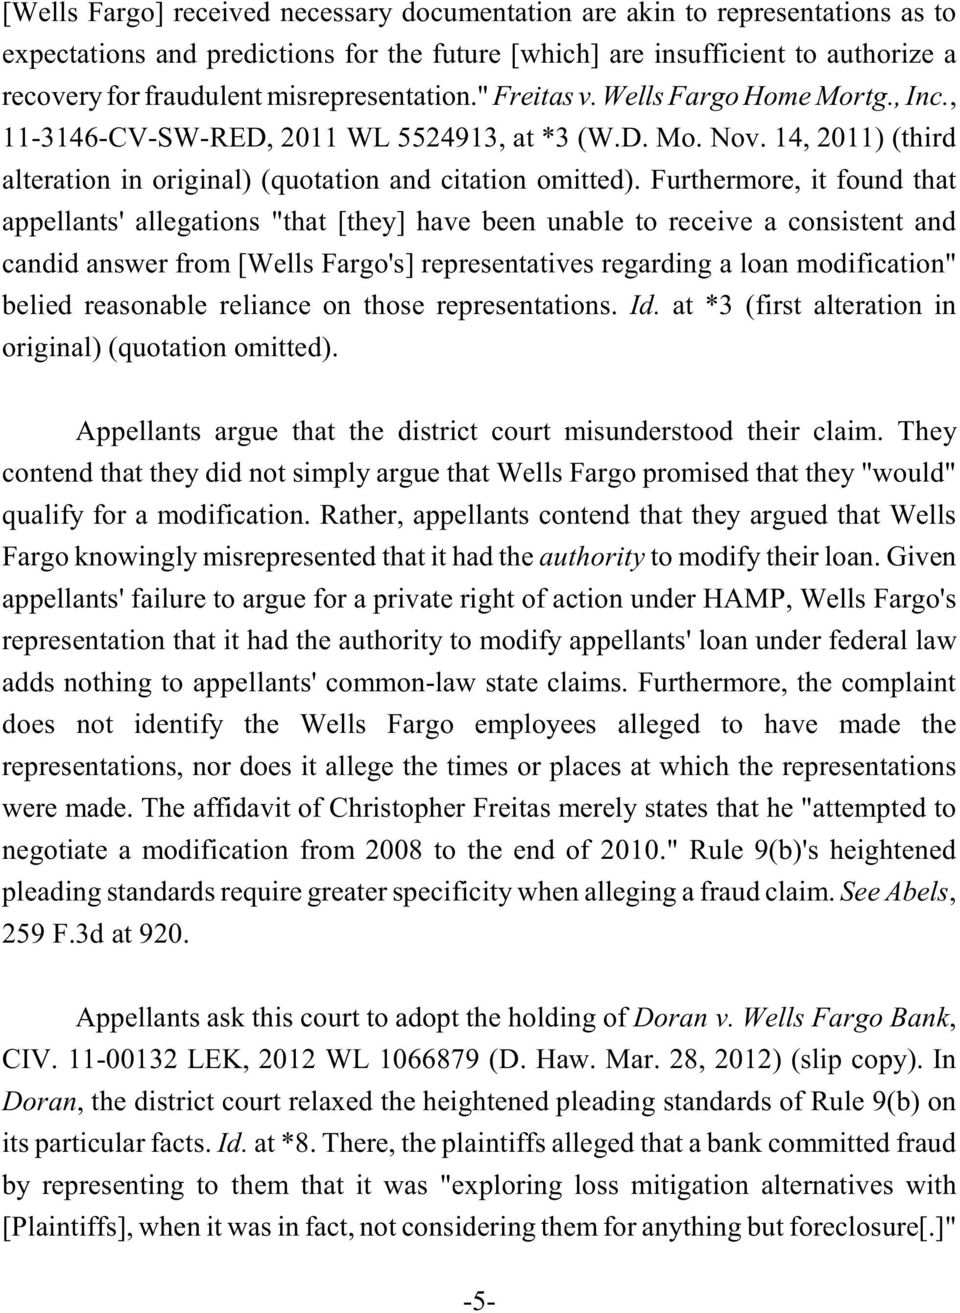 "Furthermore, it found that appellants' allegations ""that [they] have been unable to receive a consistent and candid answer from [Wells Fargo's] representatives regarding a loan modification"" belied"